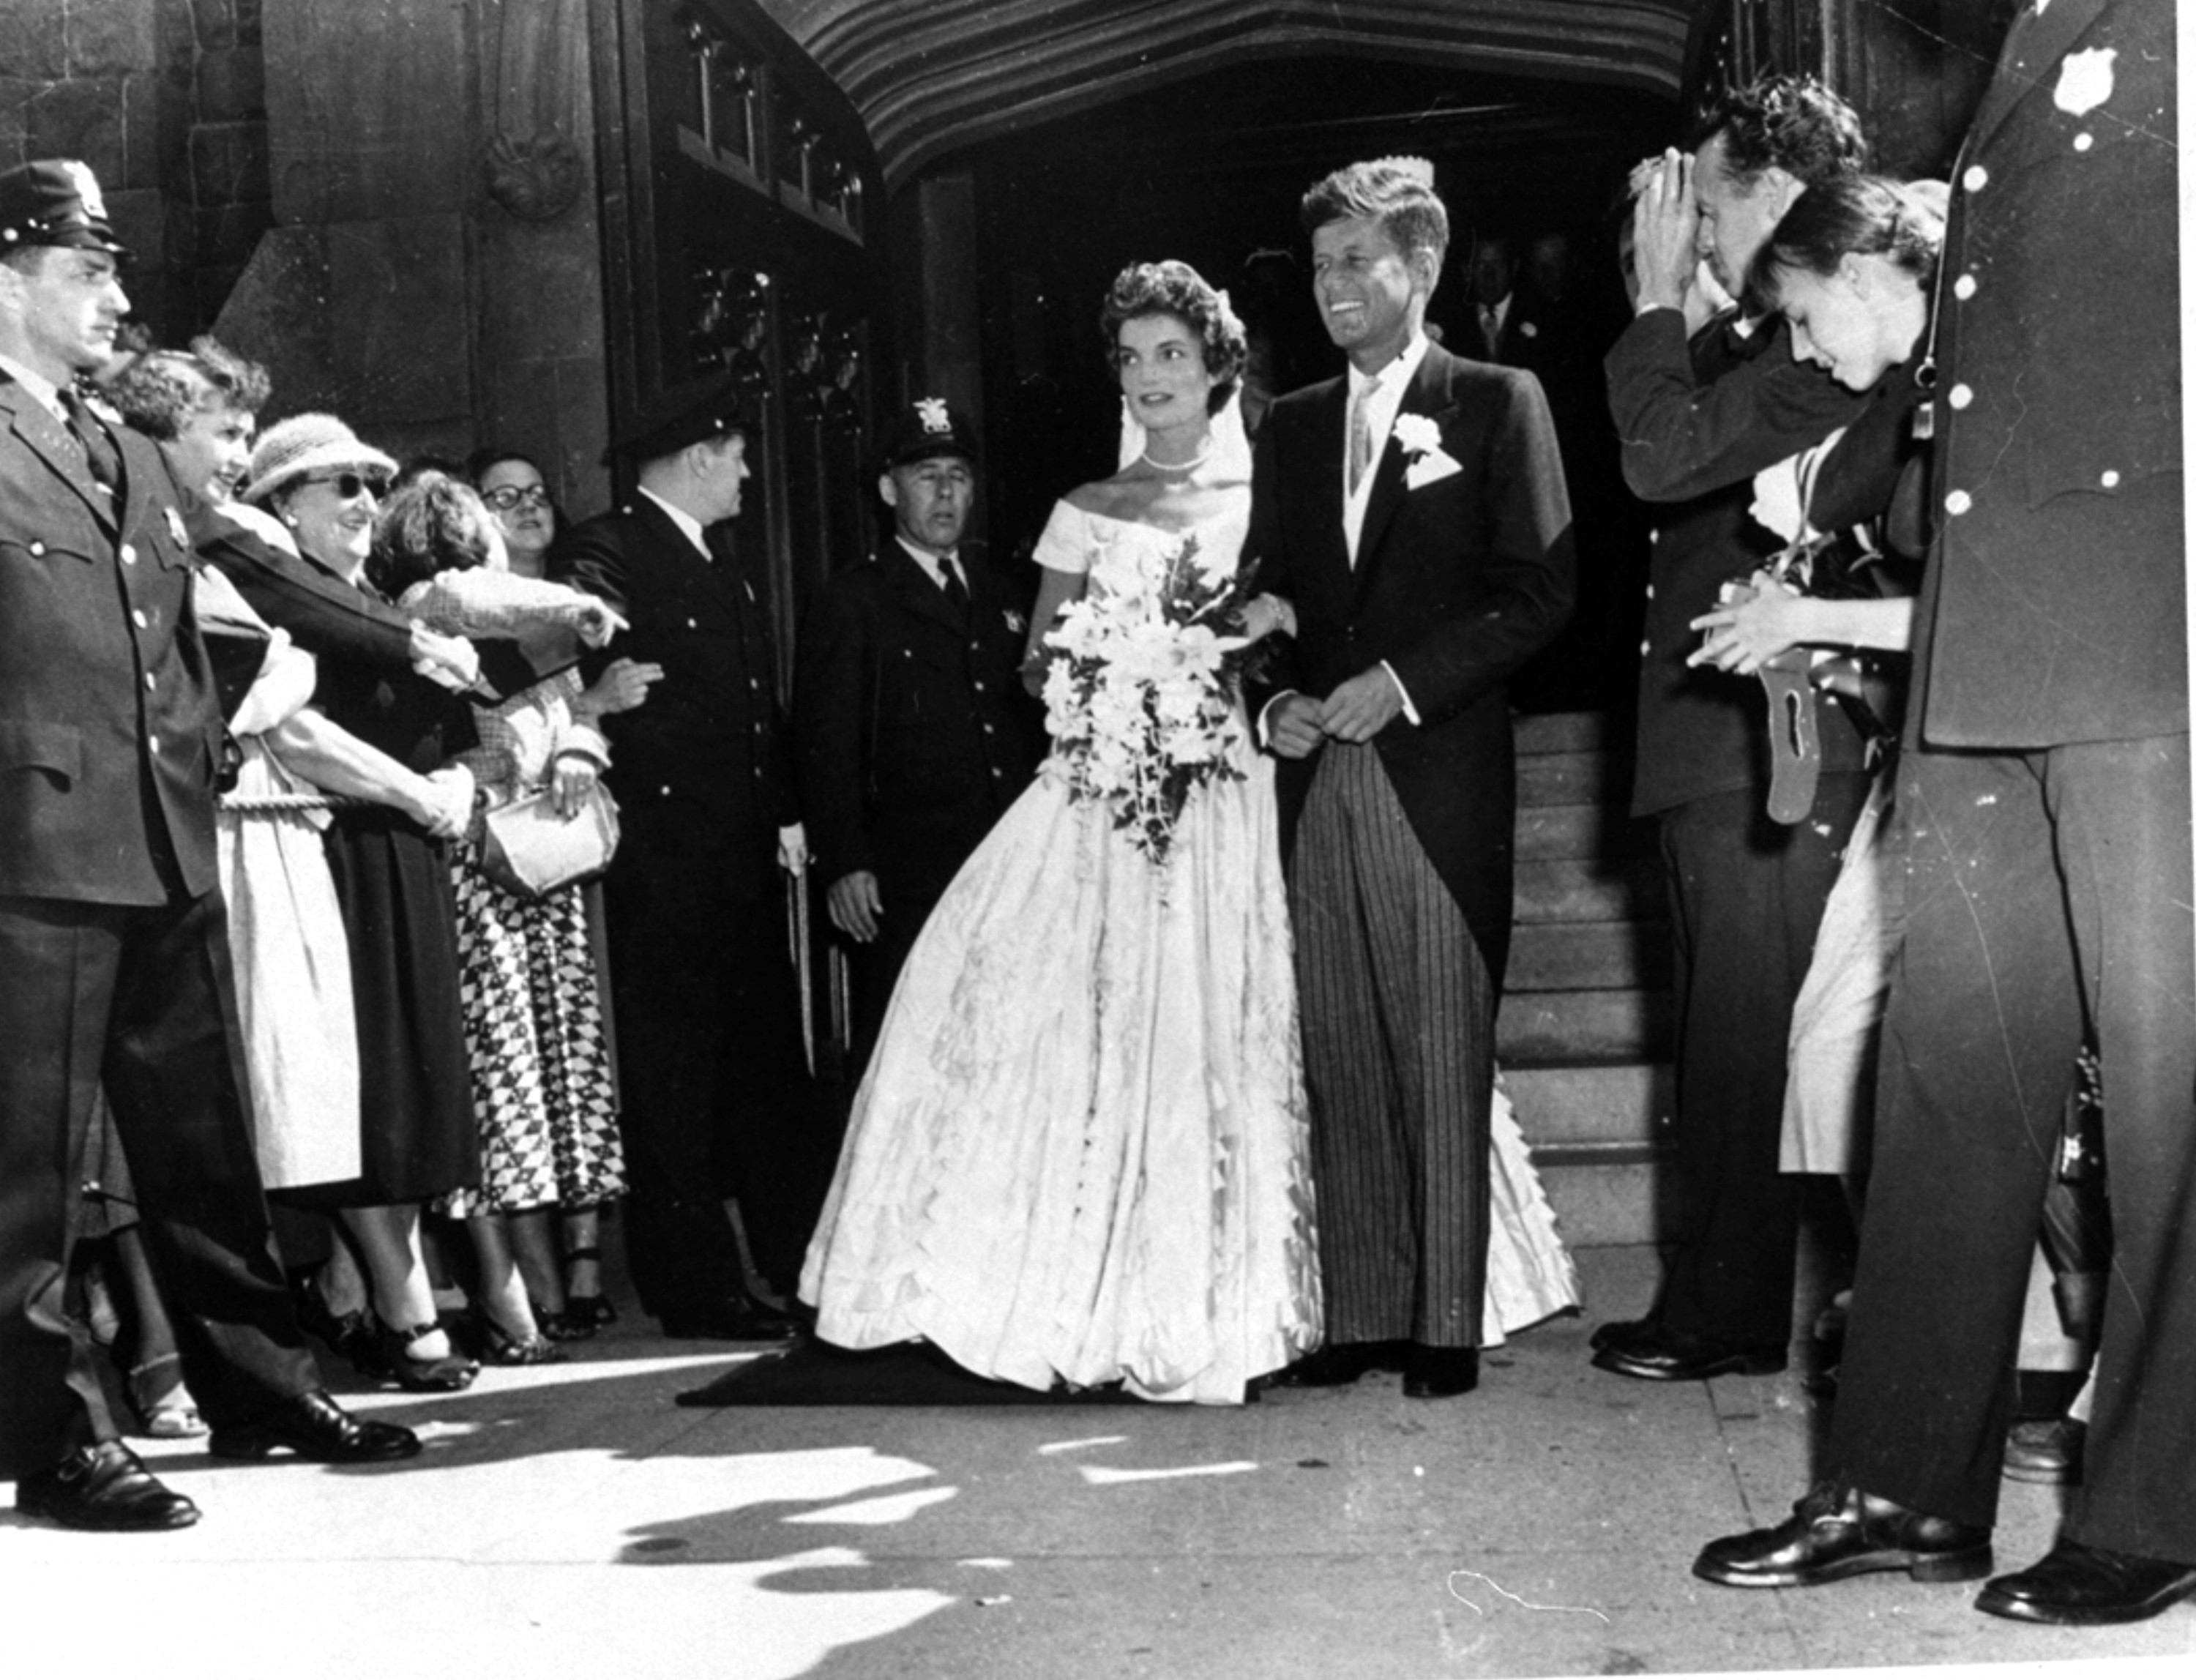 <div class='meta'><div class='origin-logo' data-origin='none'></div><span class='caption-text' data-credit='AP'>Senator John F. Kennedy, D-Mass., is shown with his bride, the former Jacqueline Bouvier, leaving a Newport, RI church after their wedding on September 12, 1953.</span></div>